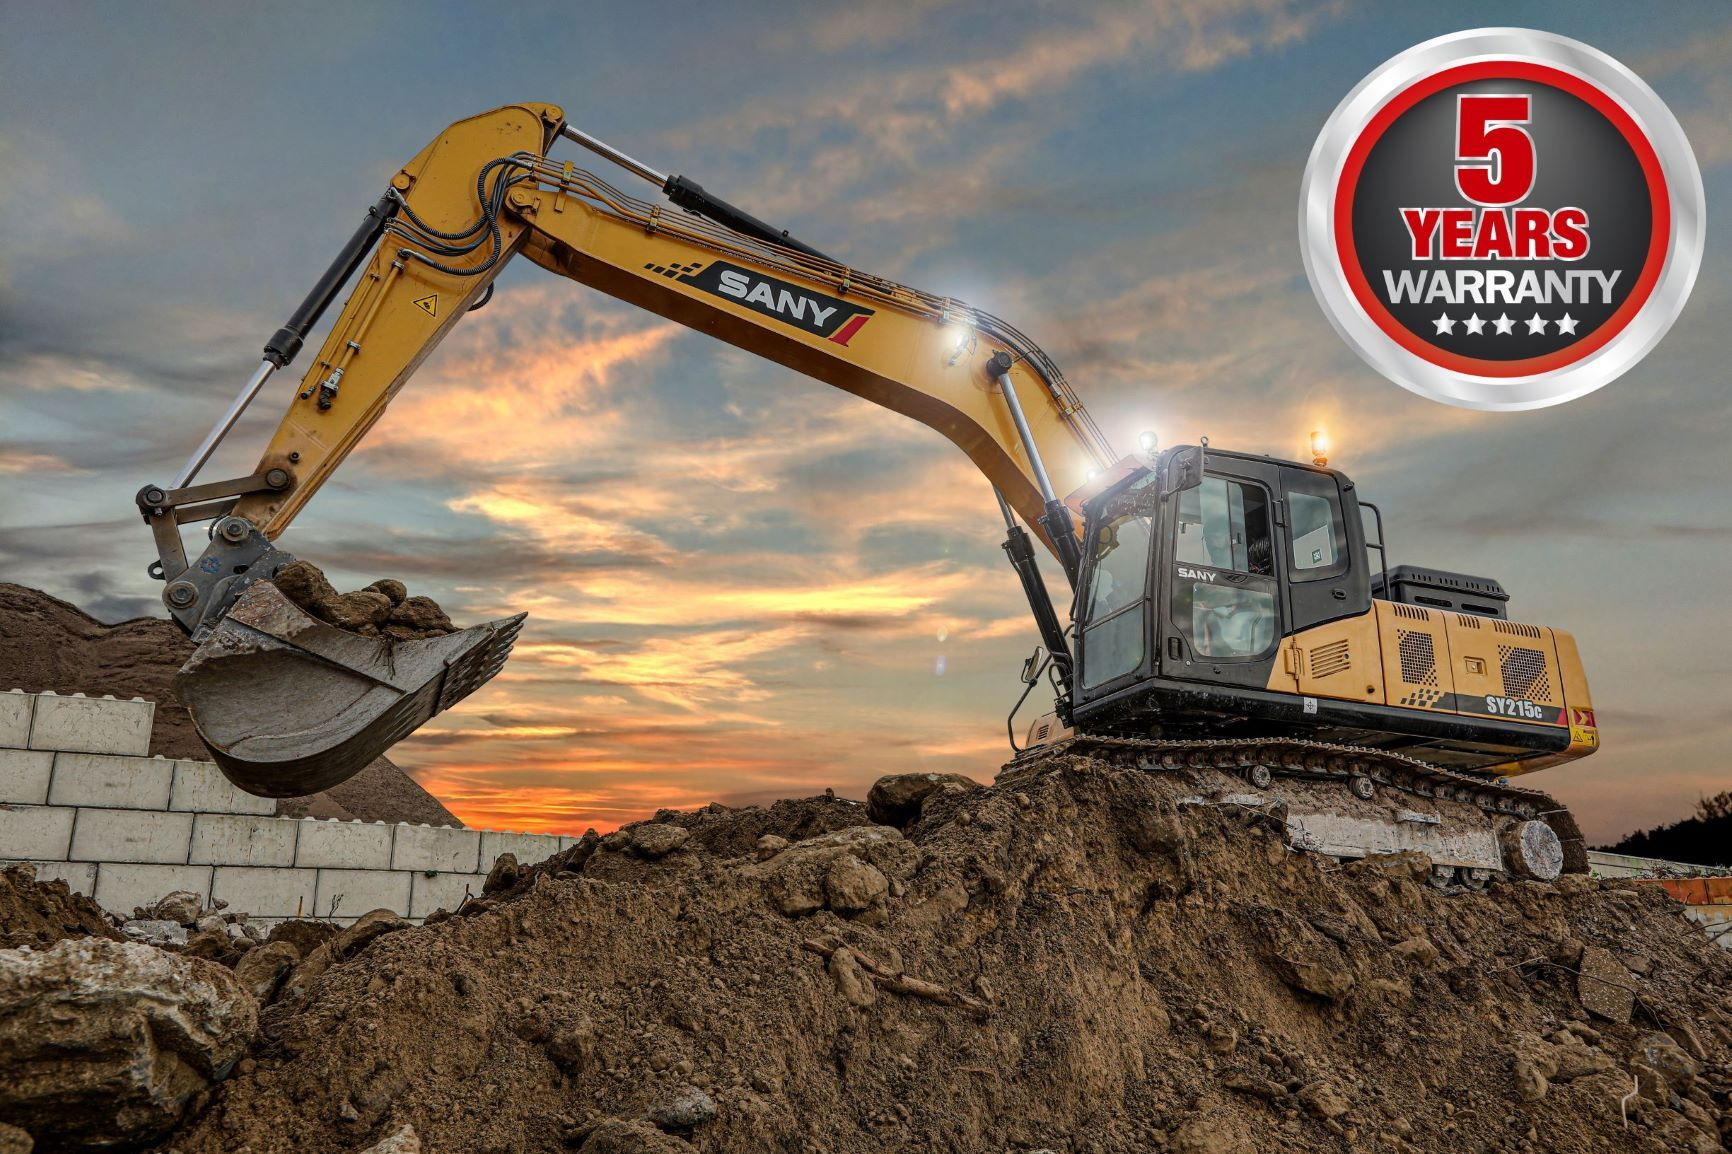 SANY launch five-year warranty on full excavator range